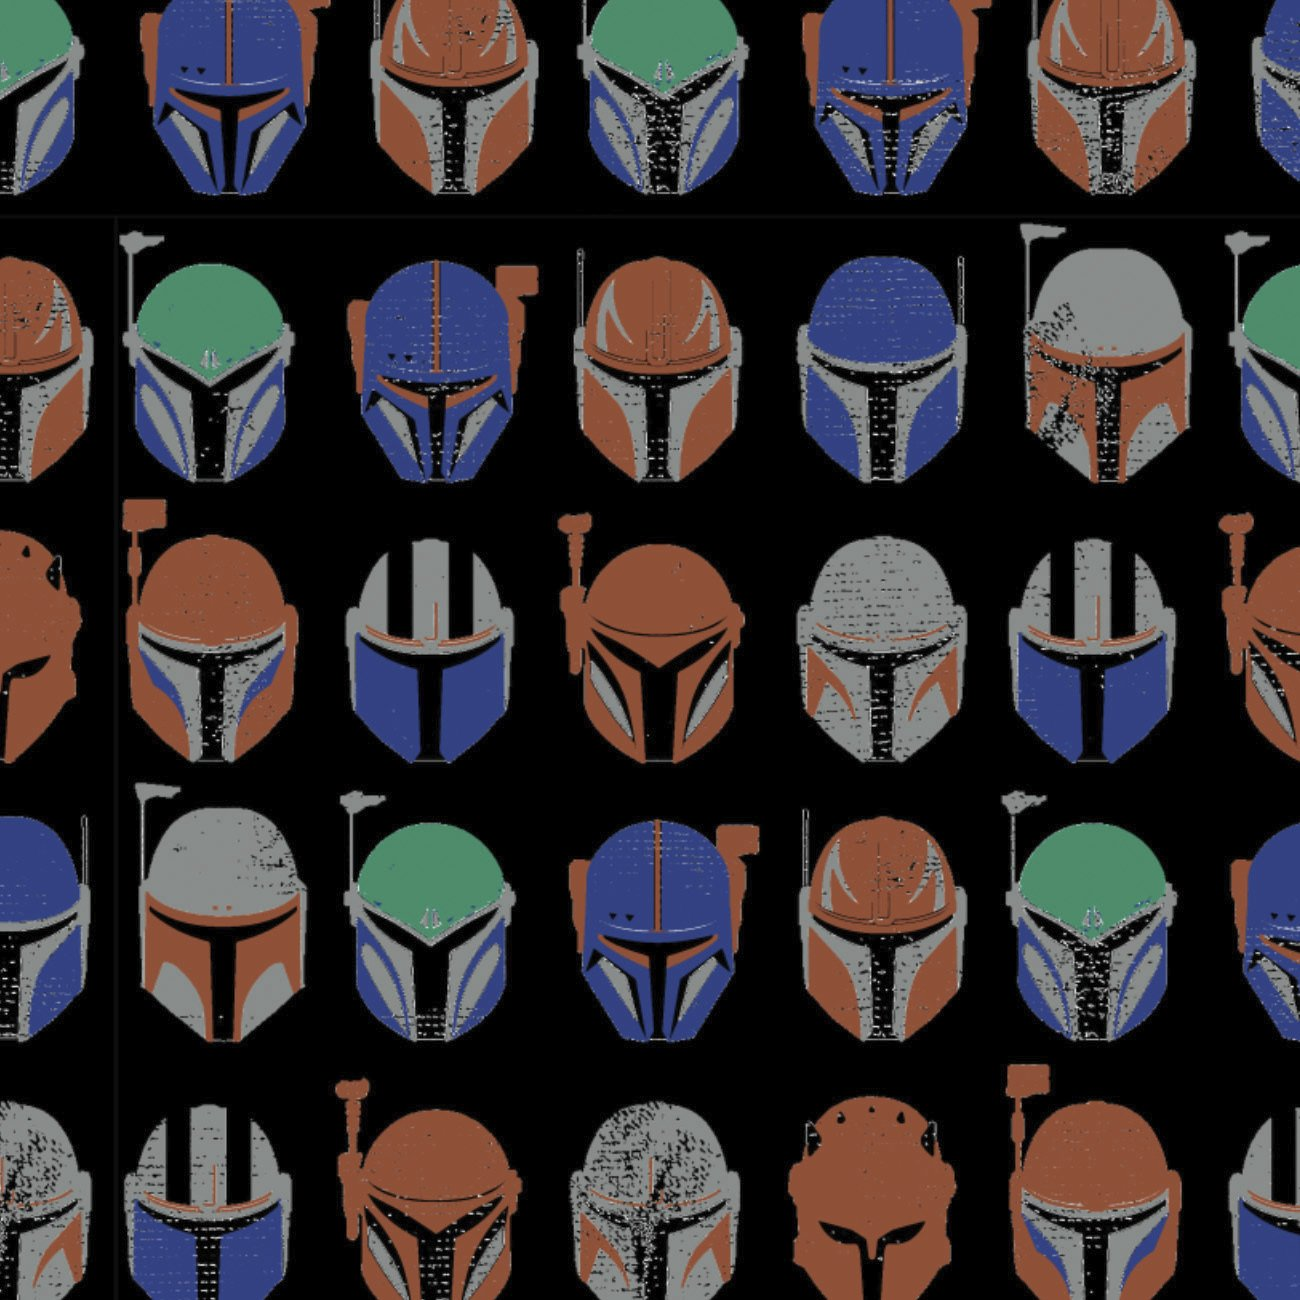 CF-The Mandalorian 73800211AJAS-02 Black - Mandalorian Assorted Helmets Fleece